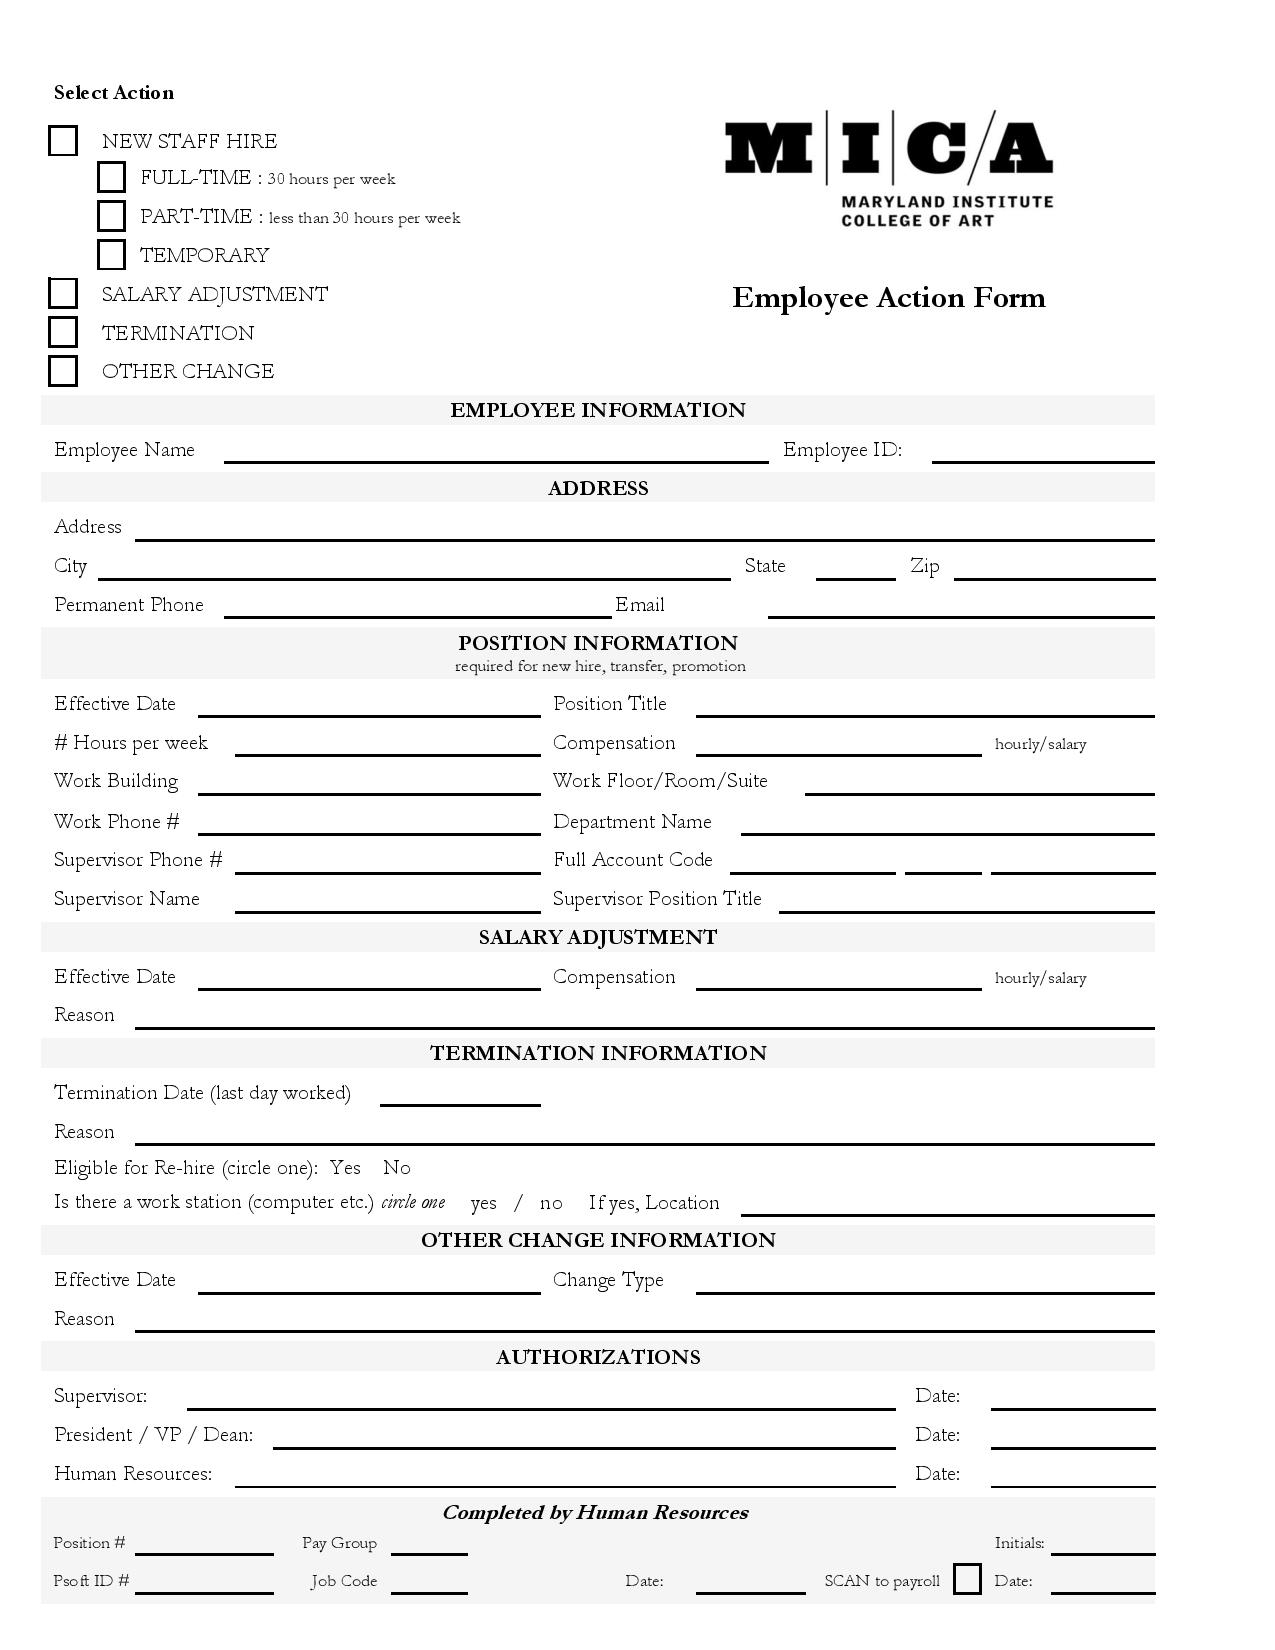 employee action form page 0012